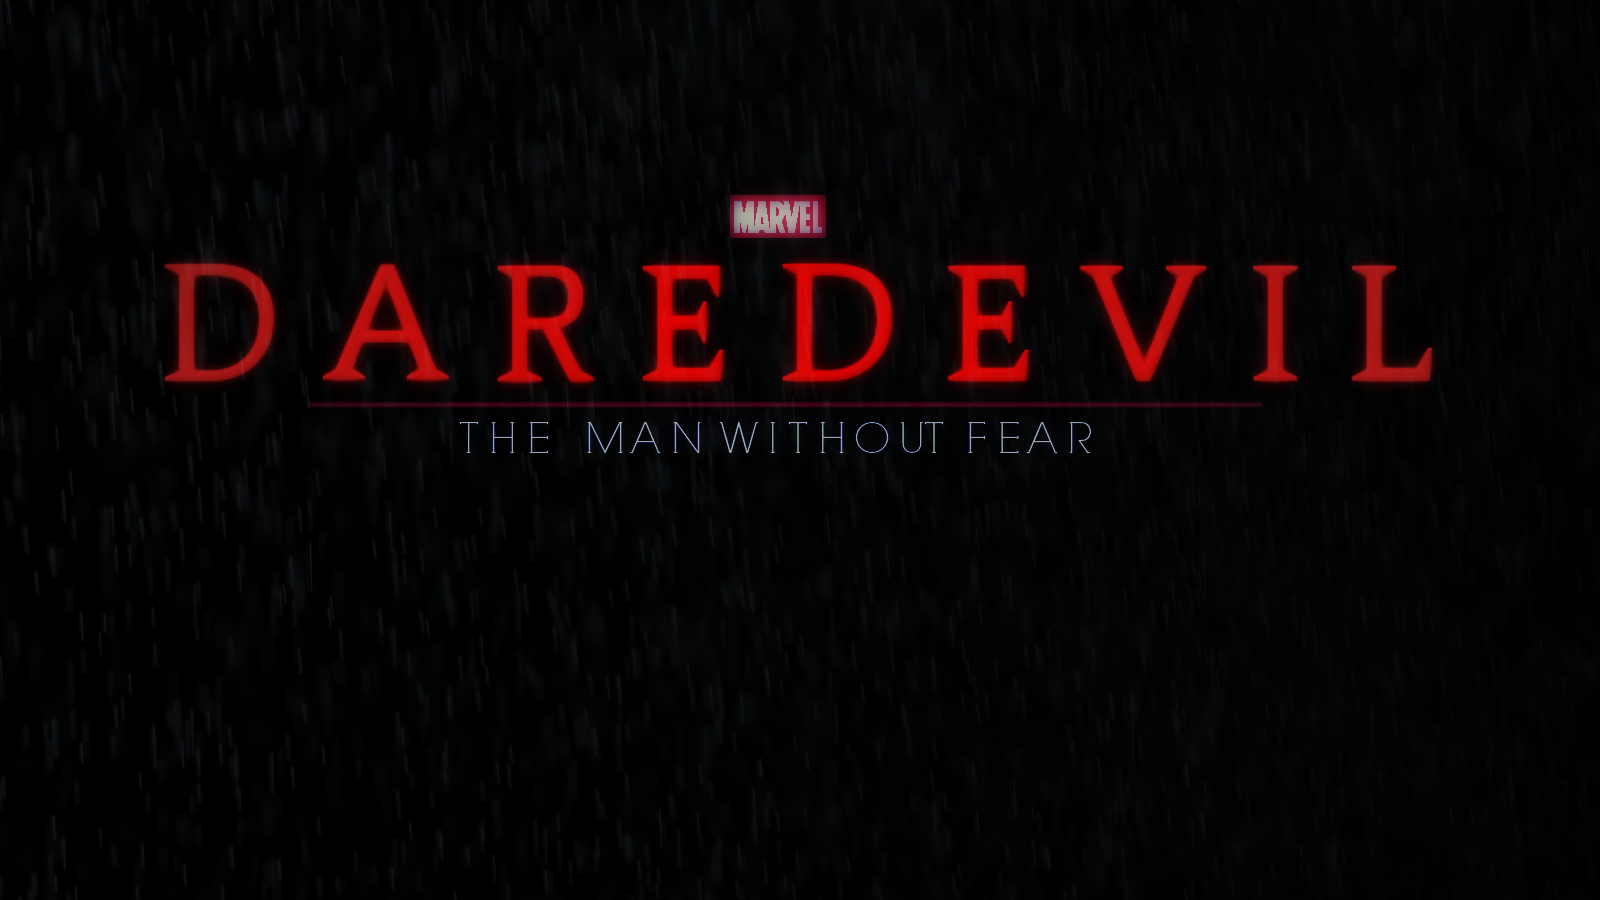 marvels daredevil the man without fear logo 2015 by